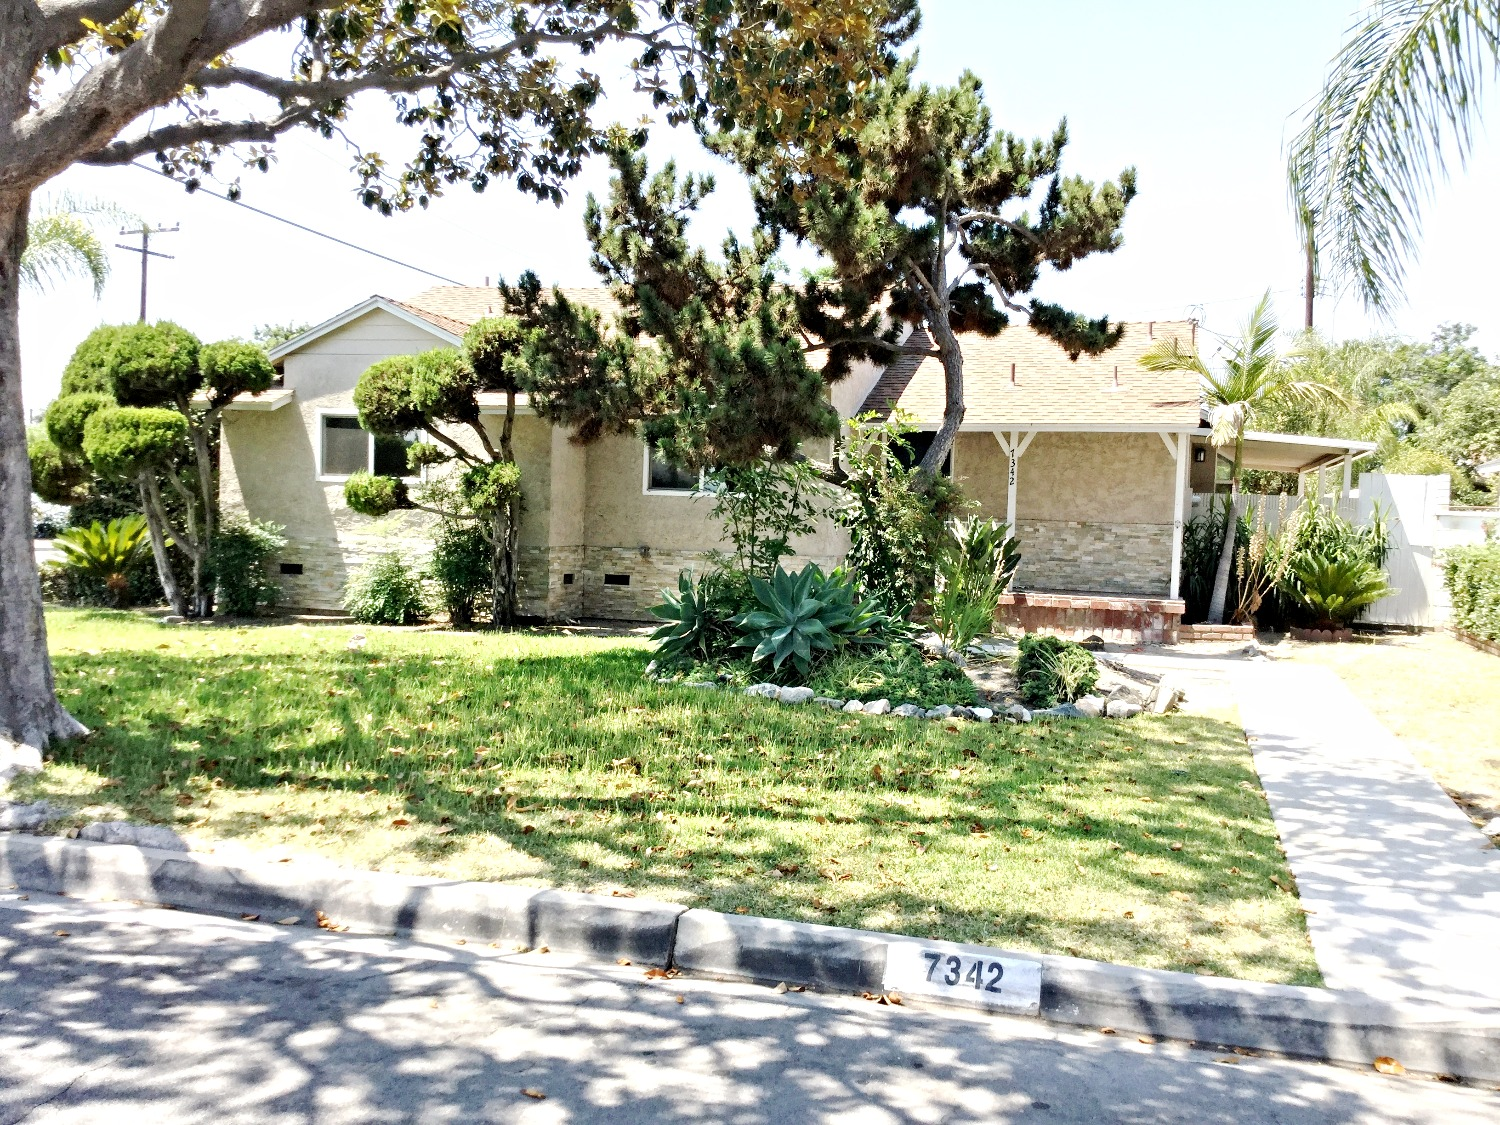 7342 GLENNCLIFF DR., DOWNEY